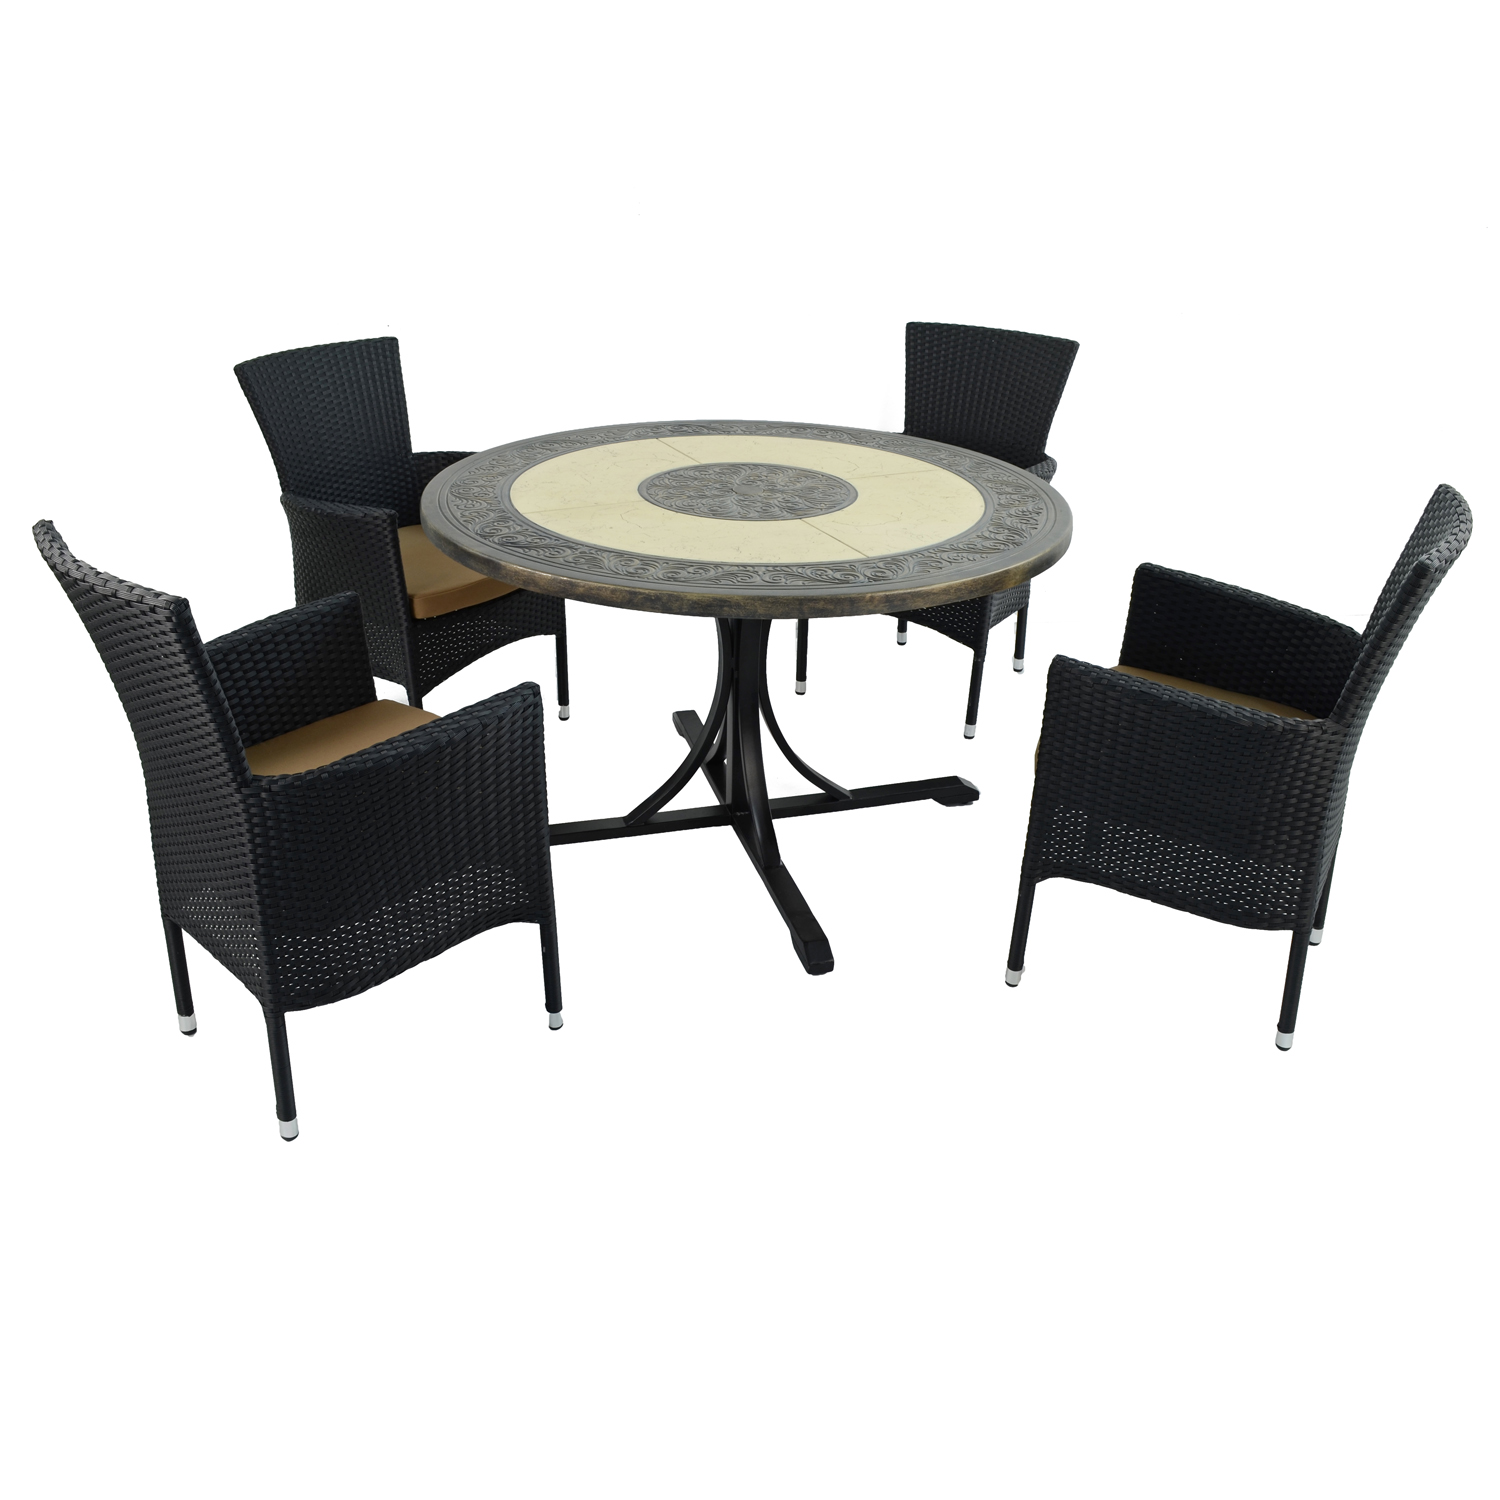 ST MALO DINING TABLE WITH 4 STOCKHOLM BLACK CHAIR SET